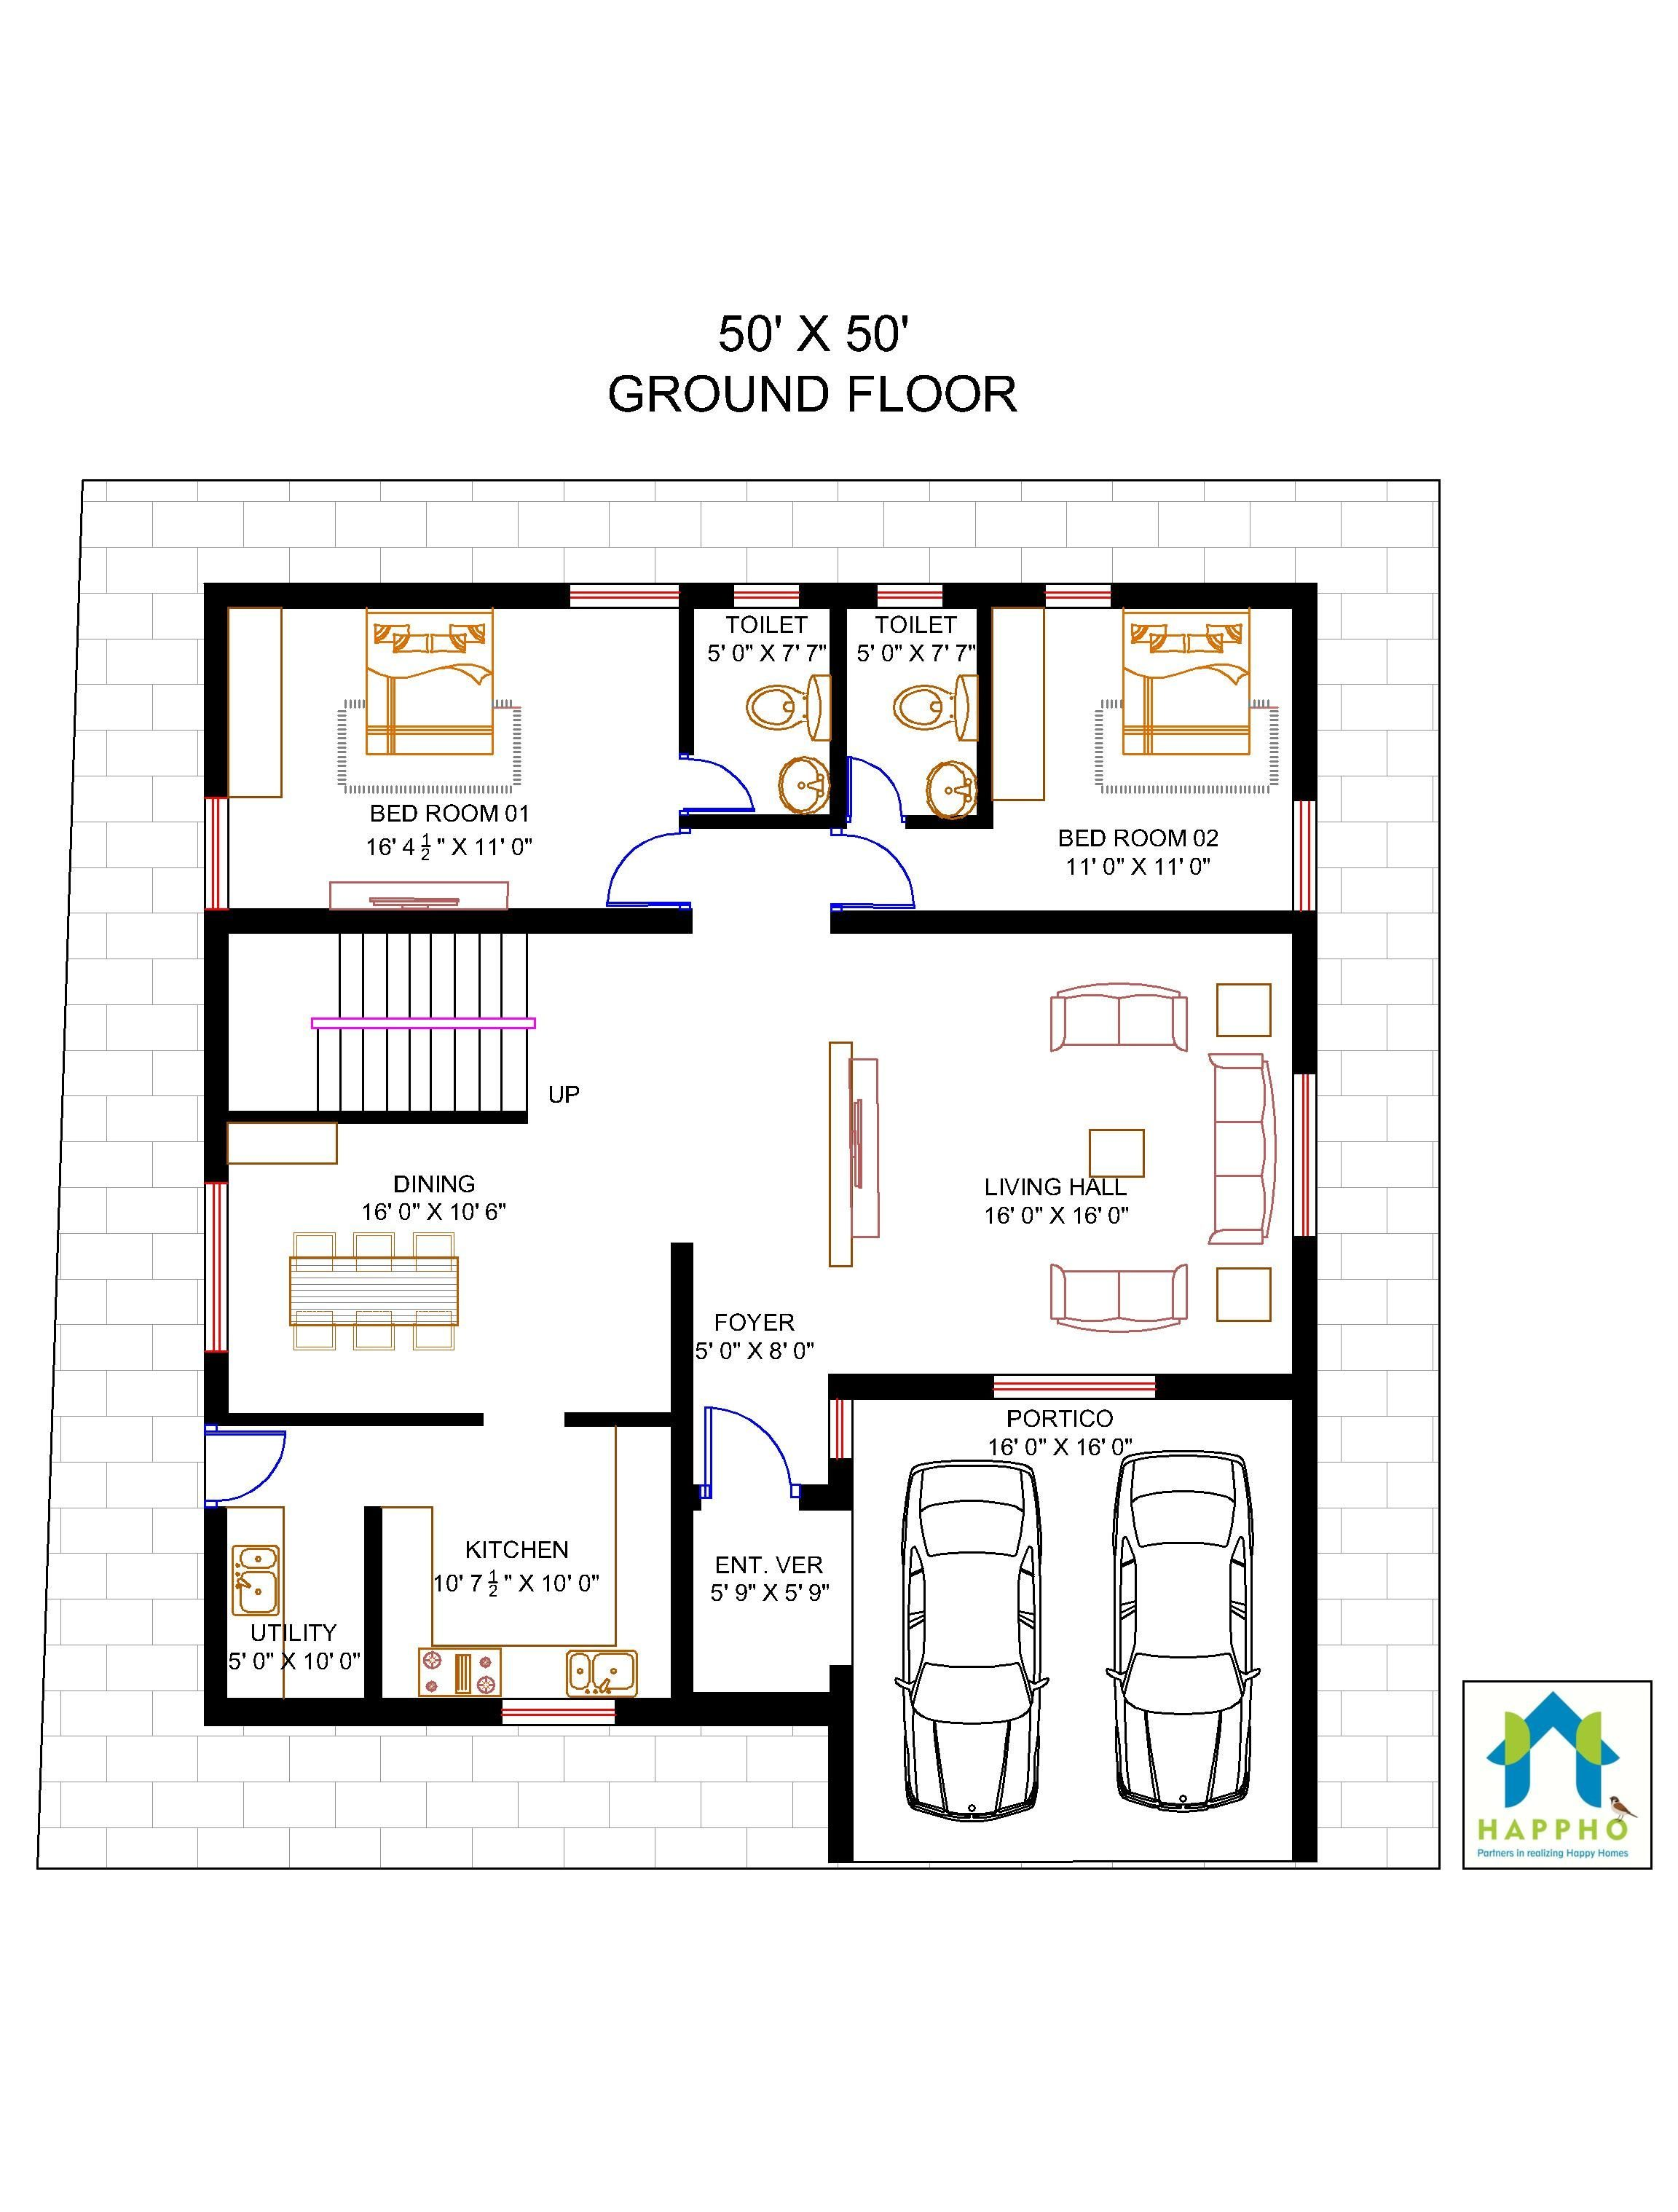 4 Bhk Bungalow Floor Plan Home For